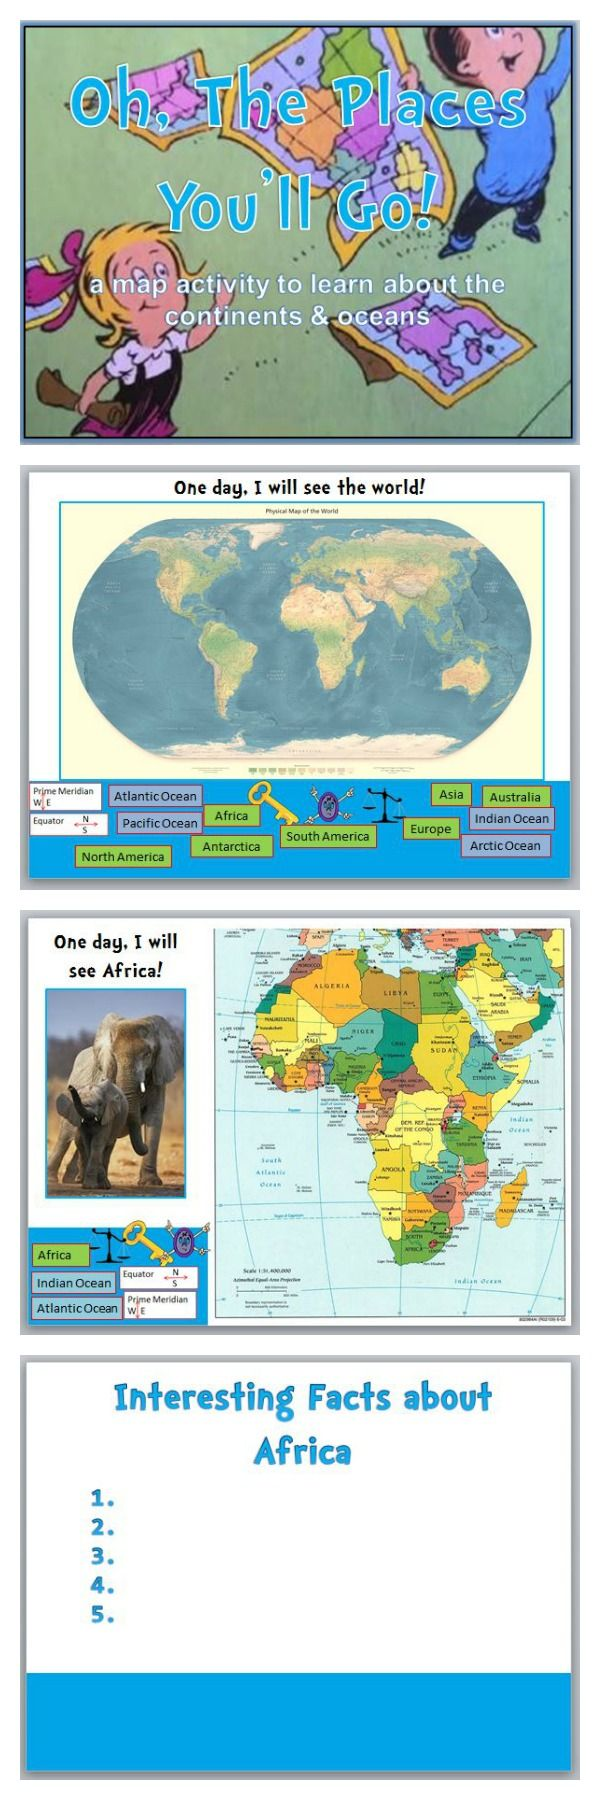 Best Ideas About Map Of Continents On Pinterest Geography - Map usa with oceans